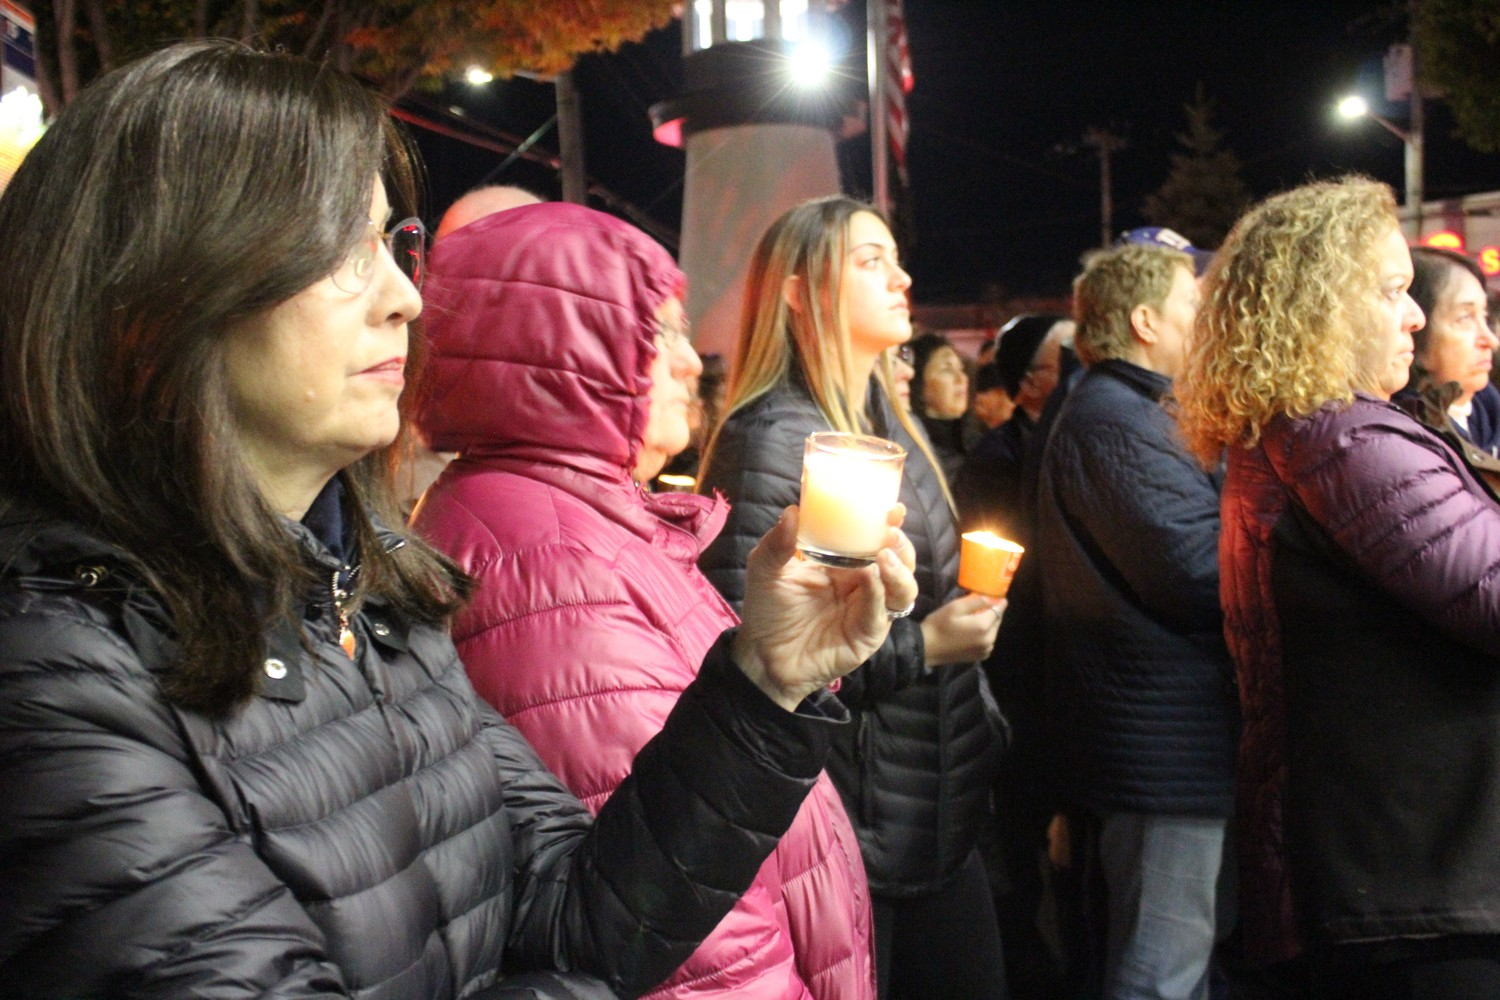 Residents held lit candles throughout the ceremony.